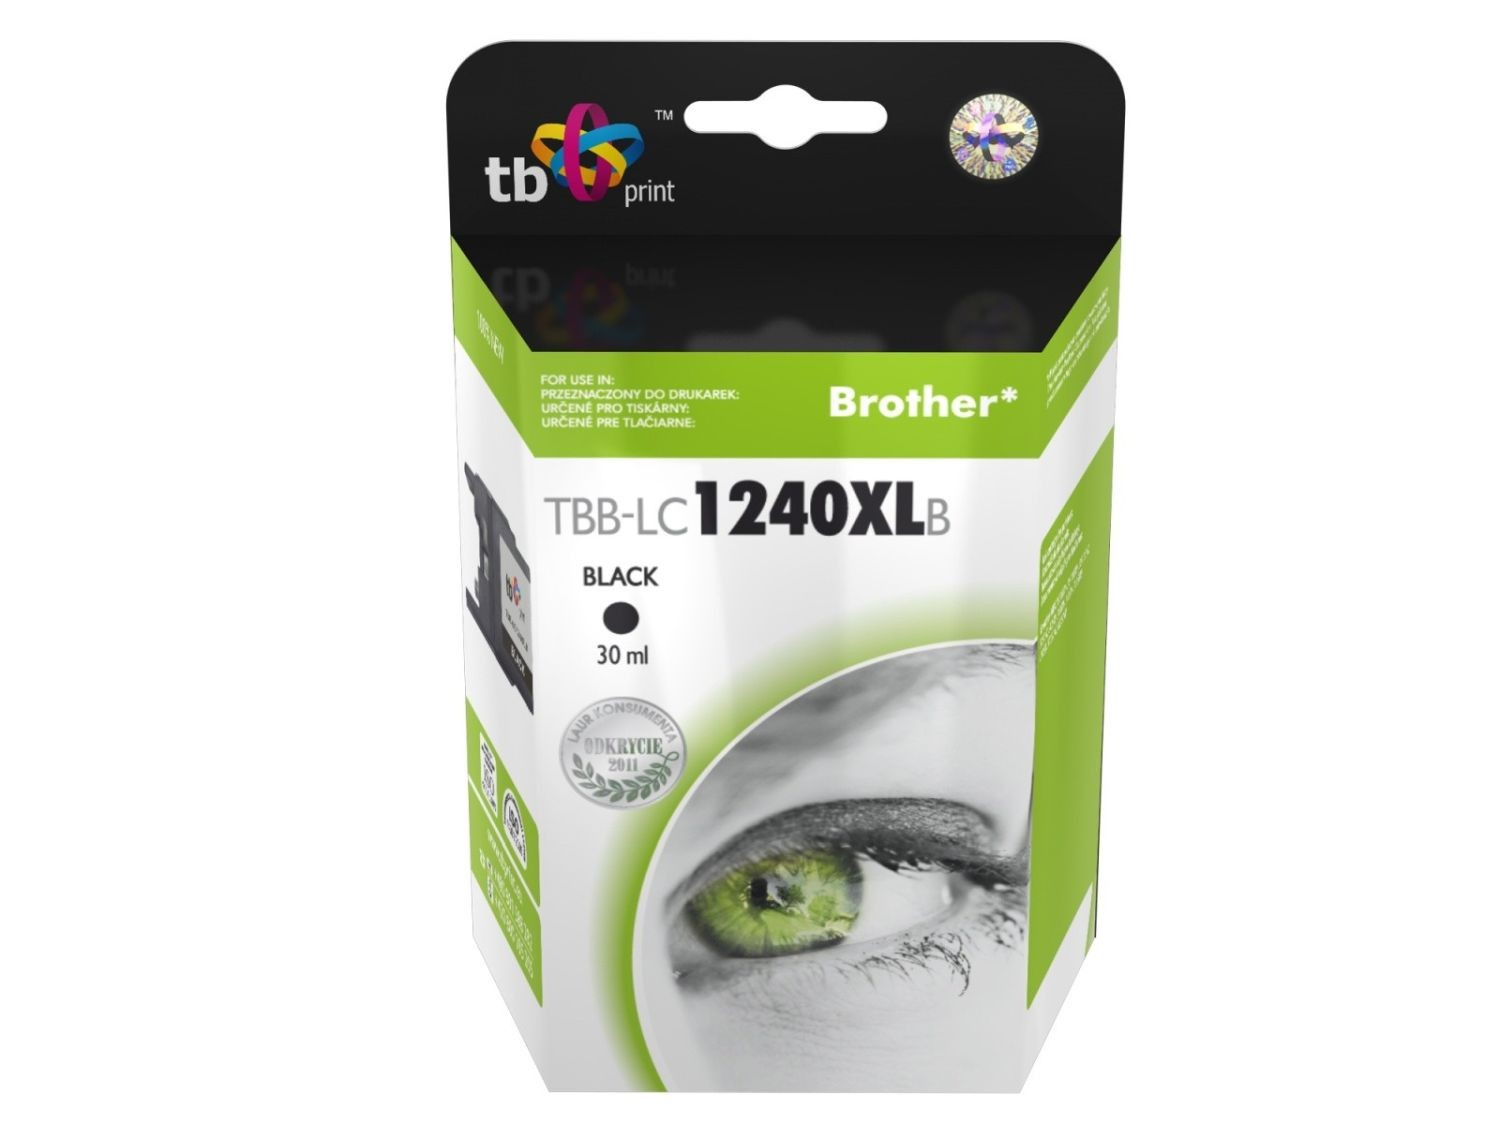 TB Print Tusz do Brother MFC-J6510DW LC1240XL TBB-LC1240XLB BK